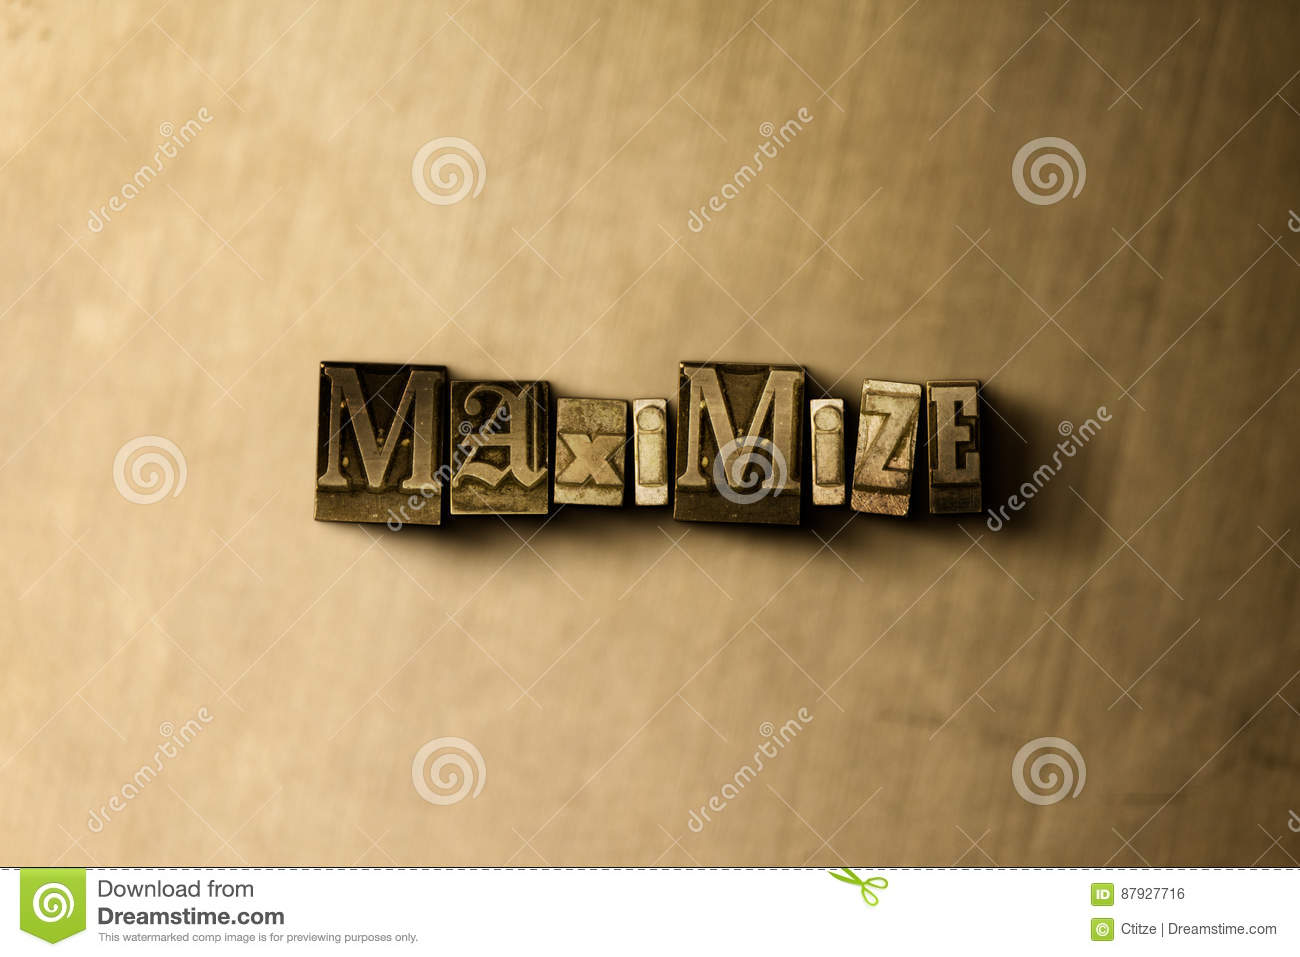 MAXIMIZE - close-up of grungy vintage typeset word on metal backdrop